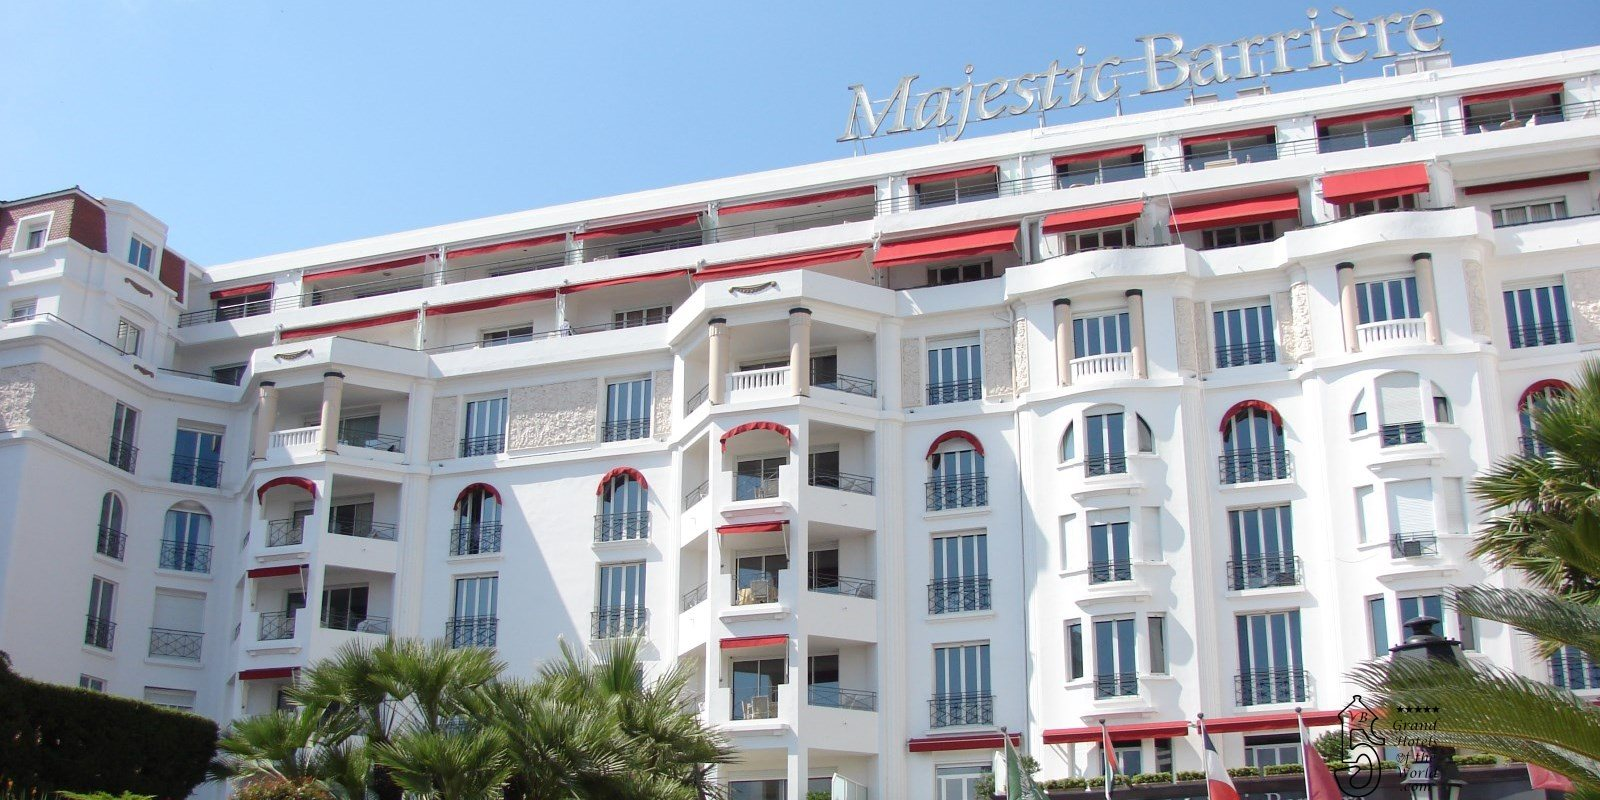 Hotel Majestic in Cannes